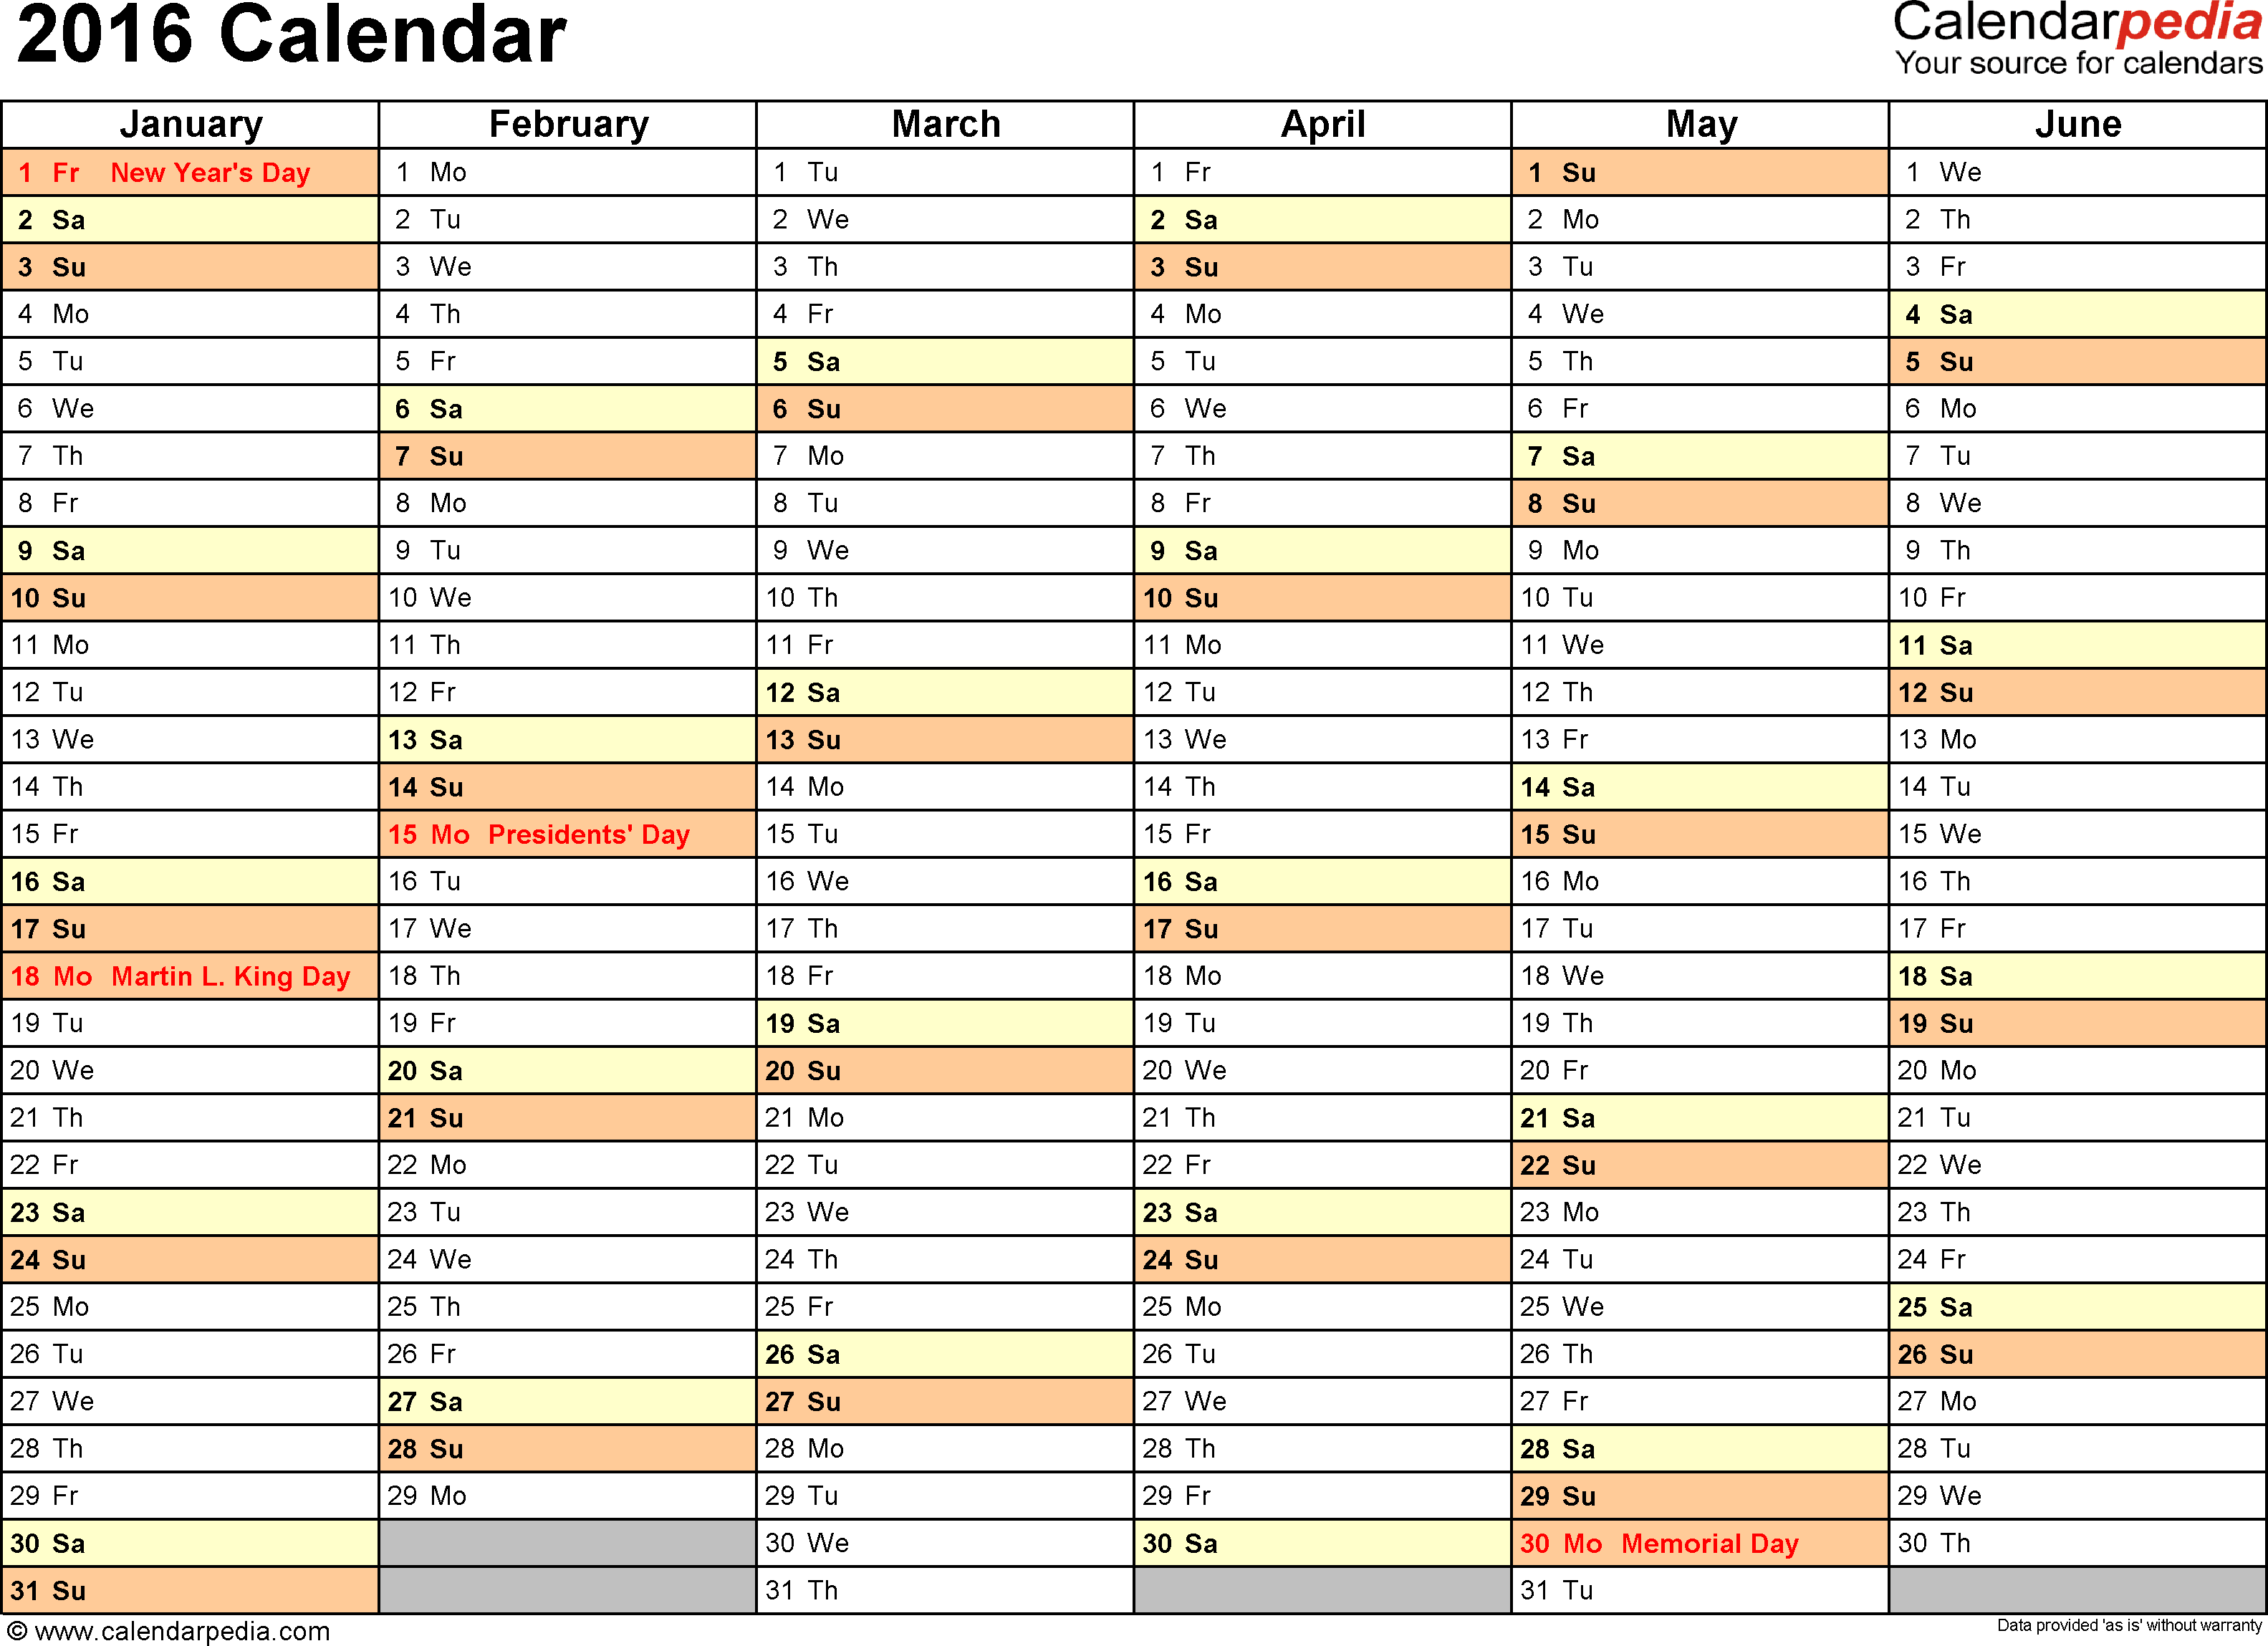 Calendar Planner Sample : Calendar free printable word templates